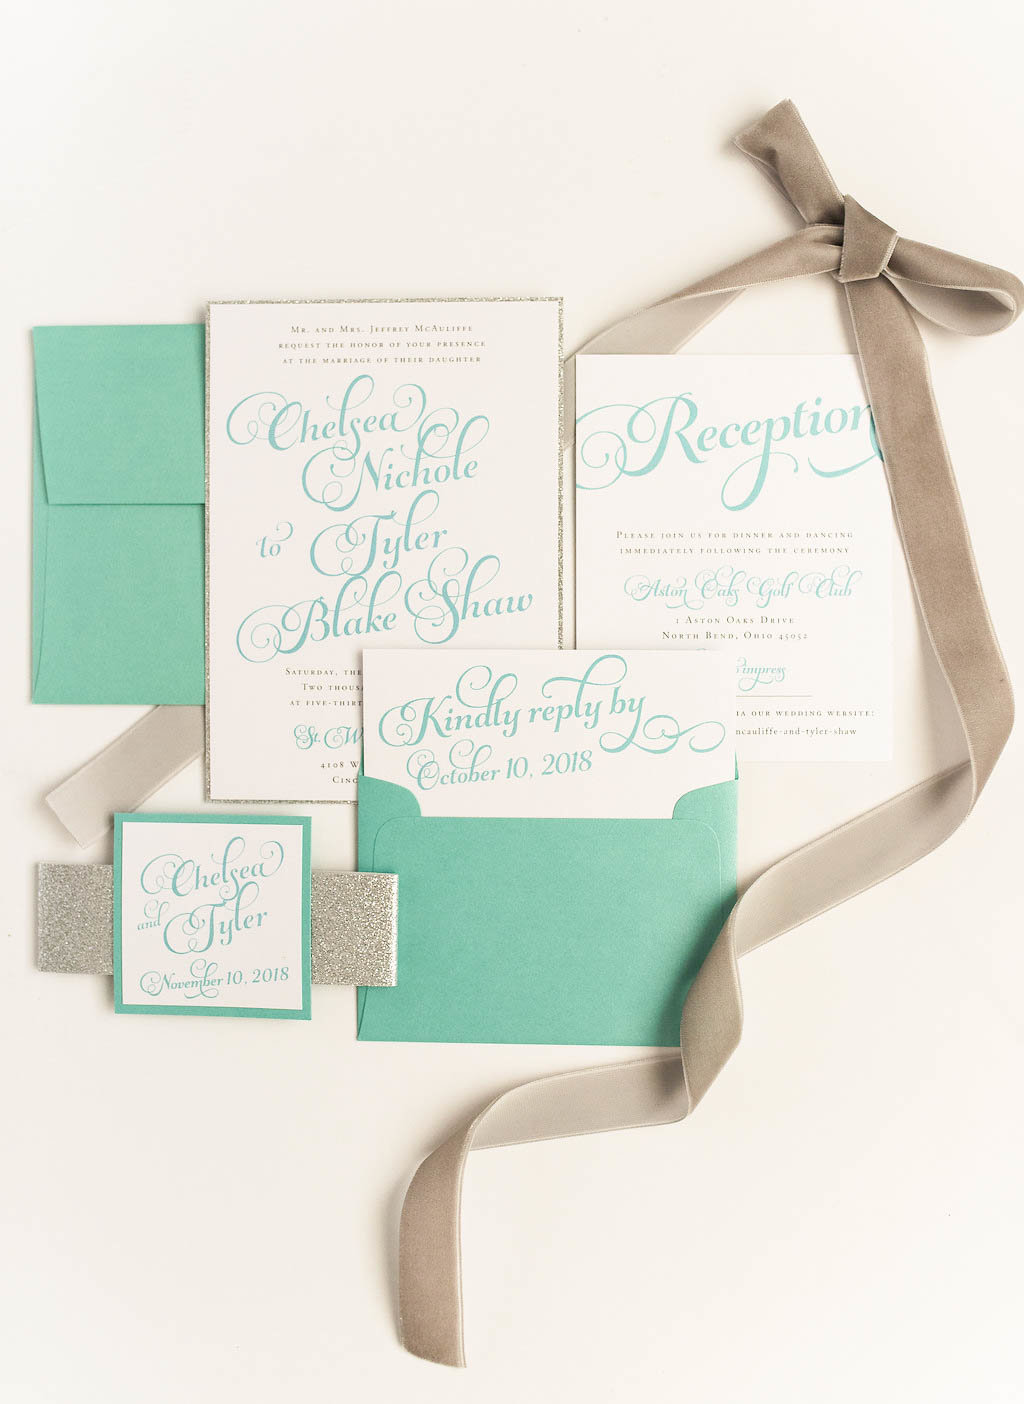 Melissa Arey - Hello Invite Design Studio - Photo -0991